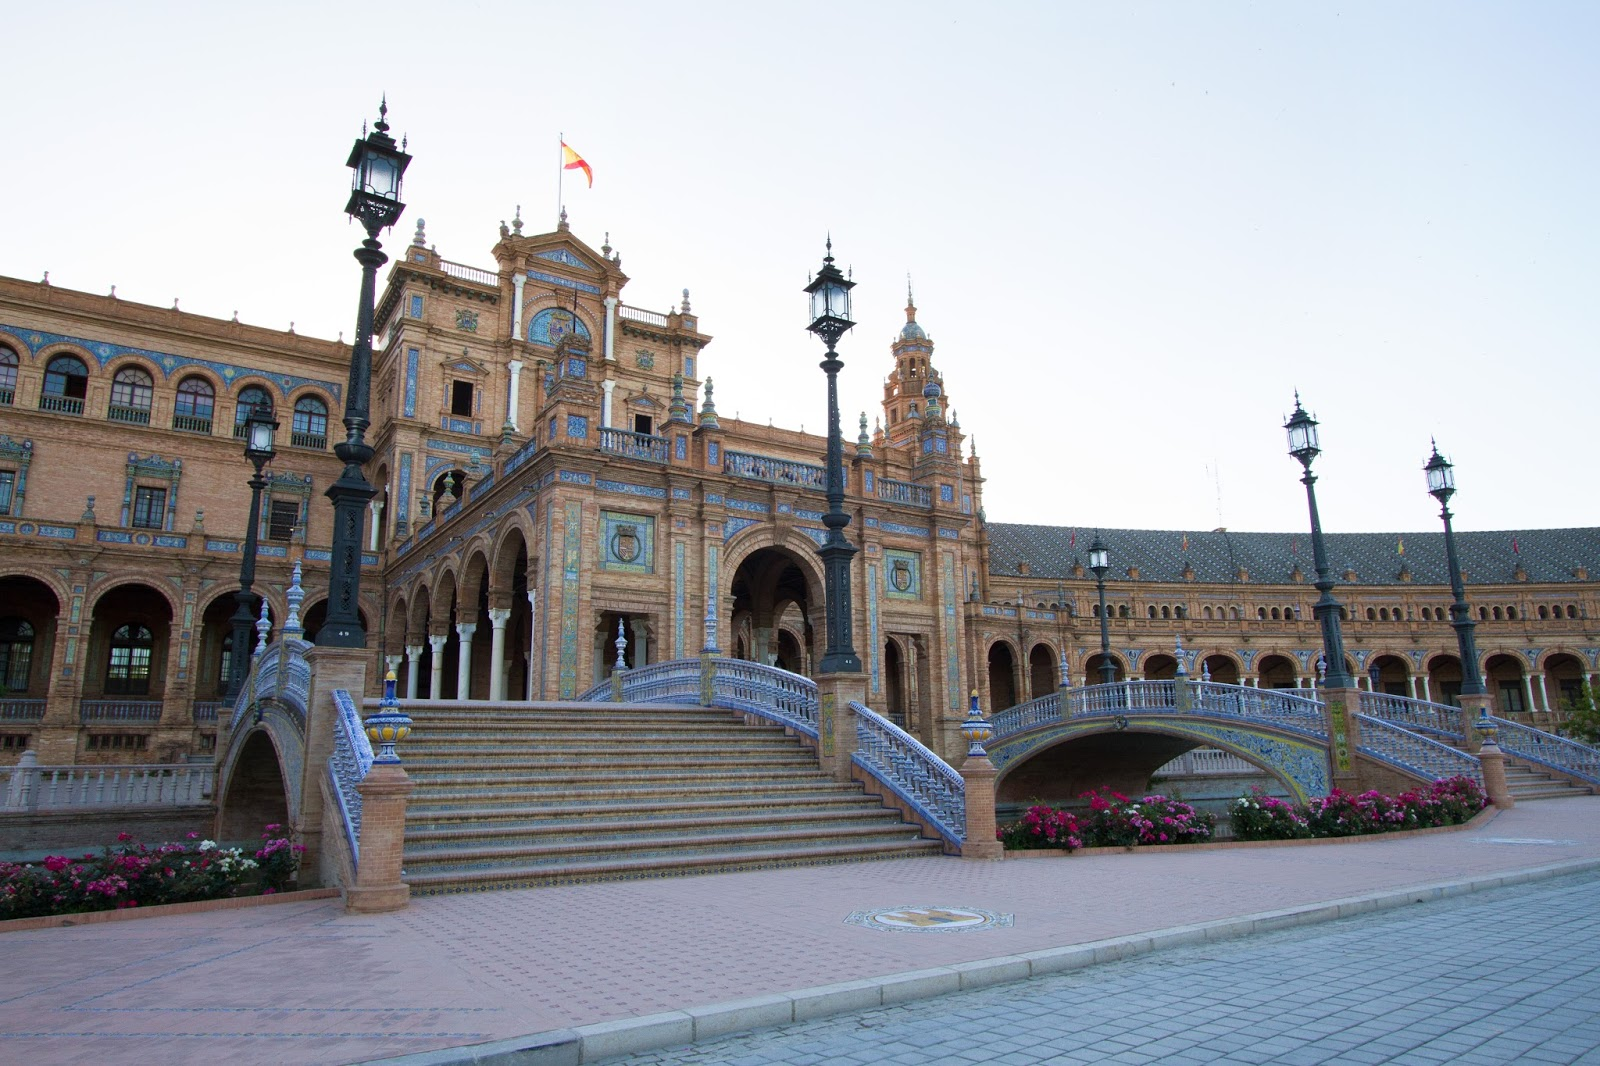 Plaza de Espana in Sevilla Spain